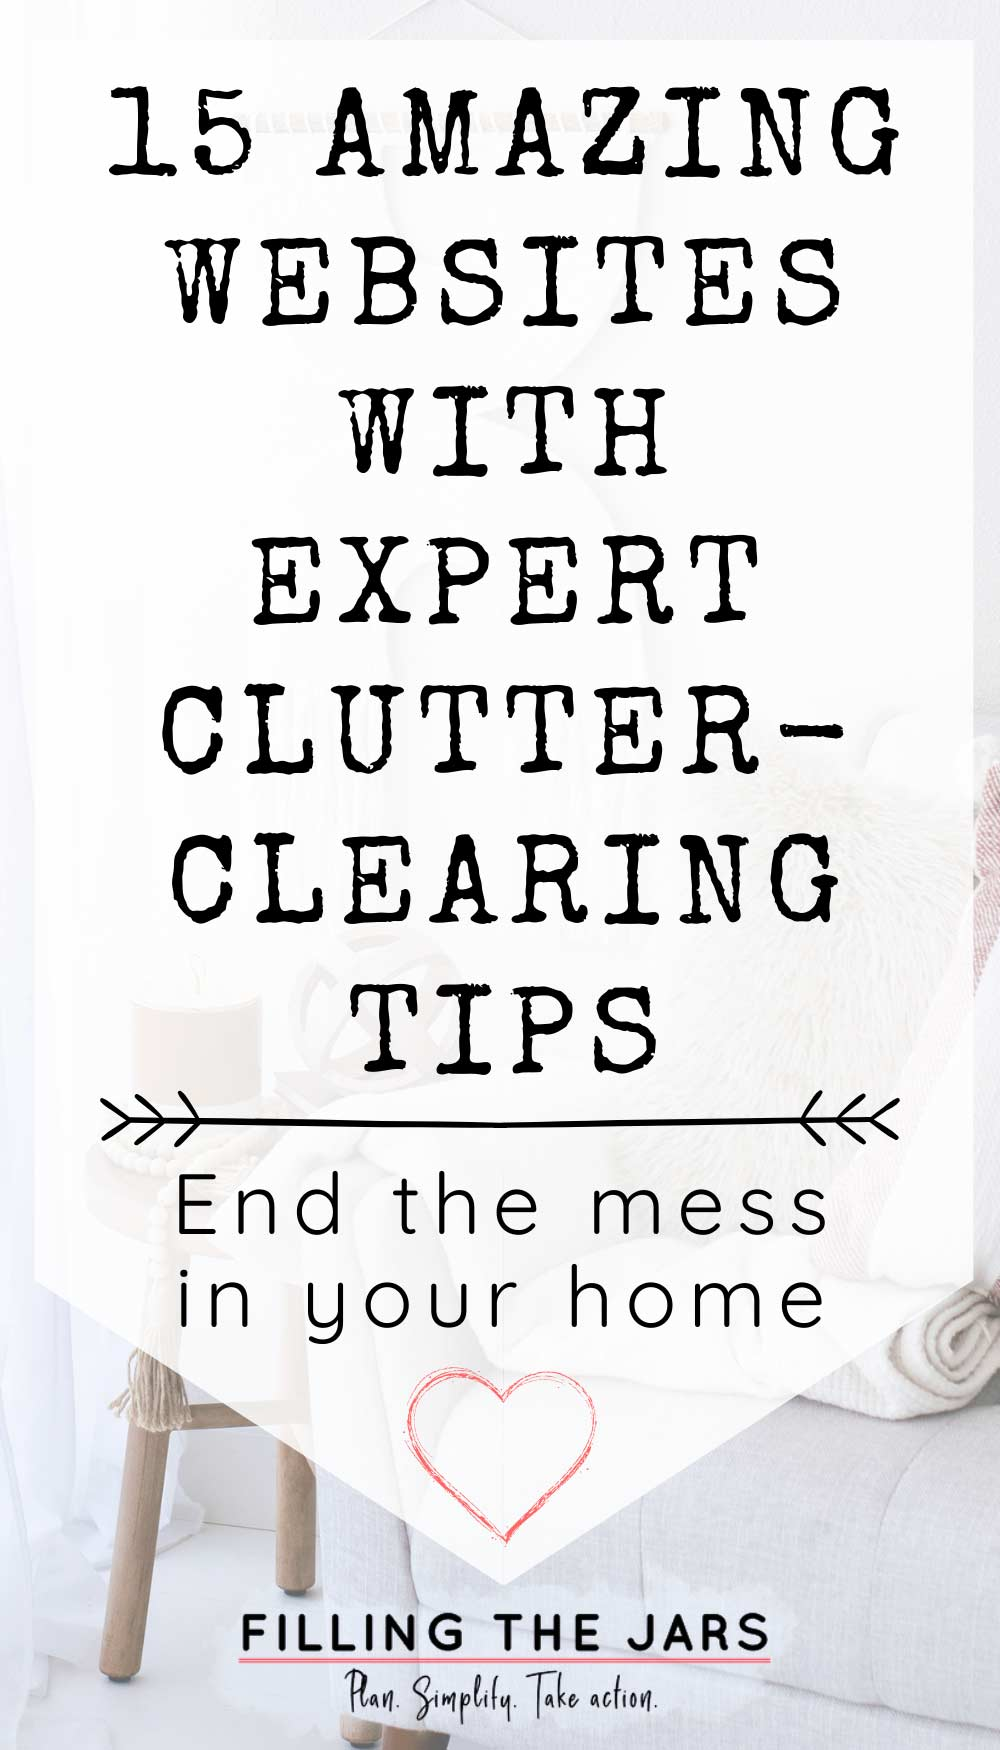 black text amazing clutter-clearing websites on white background over image of living room with simple white decor